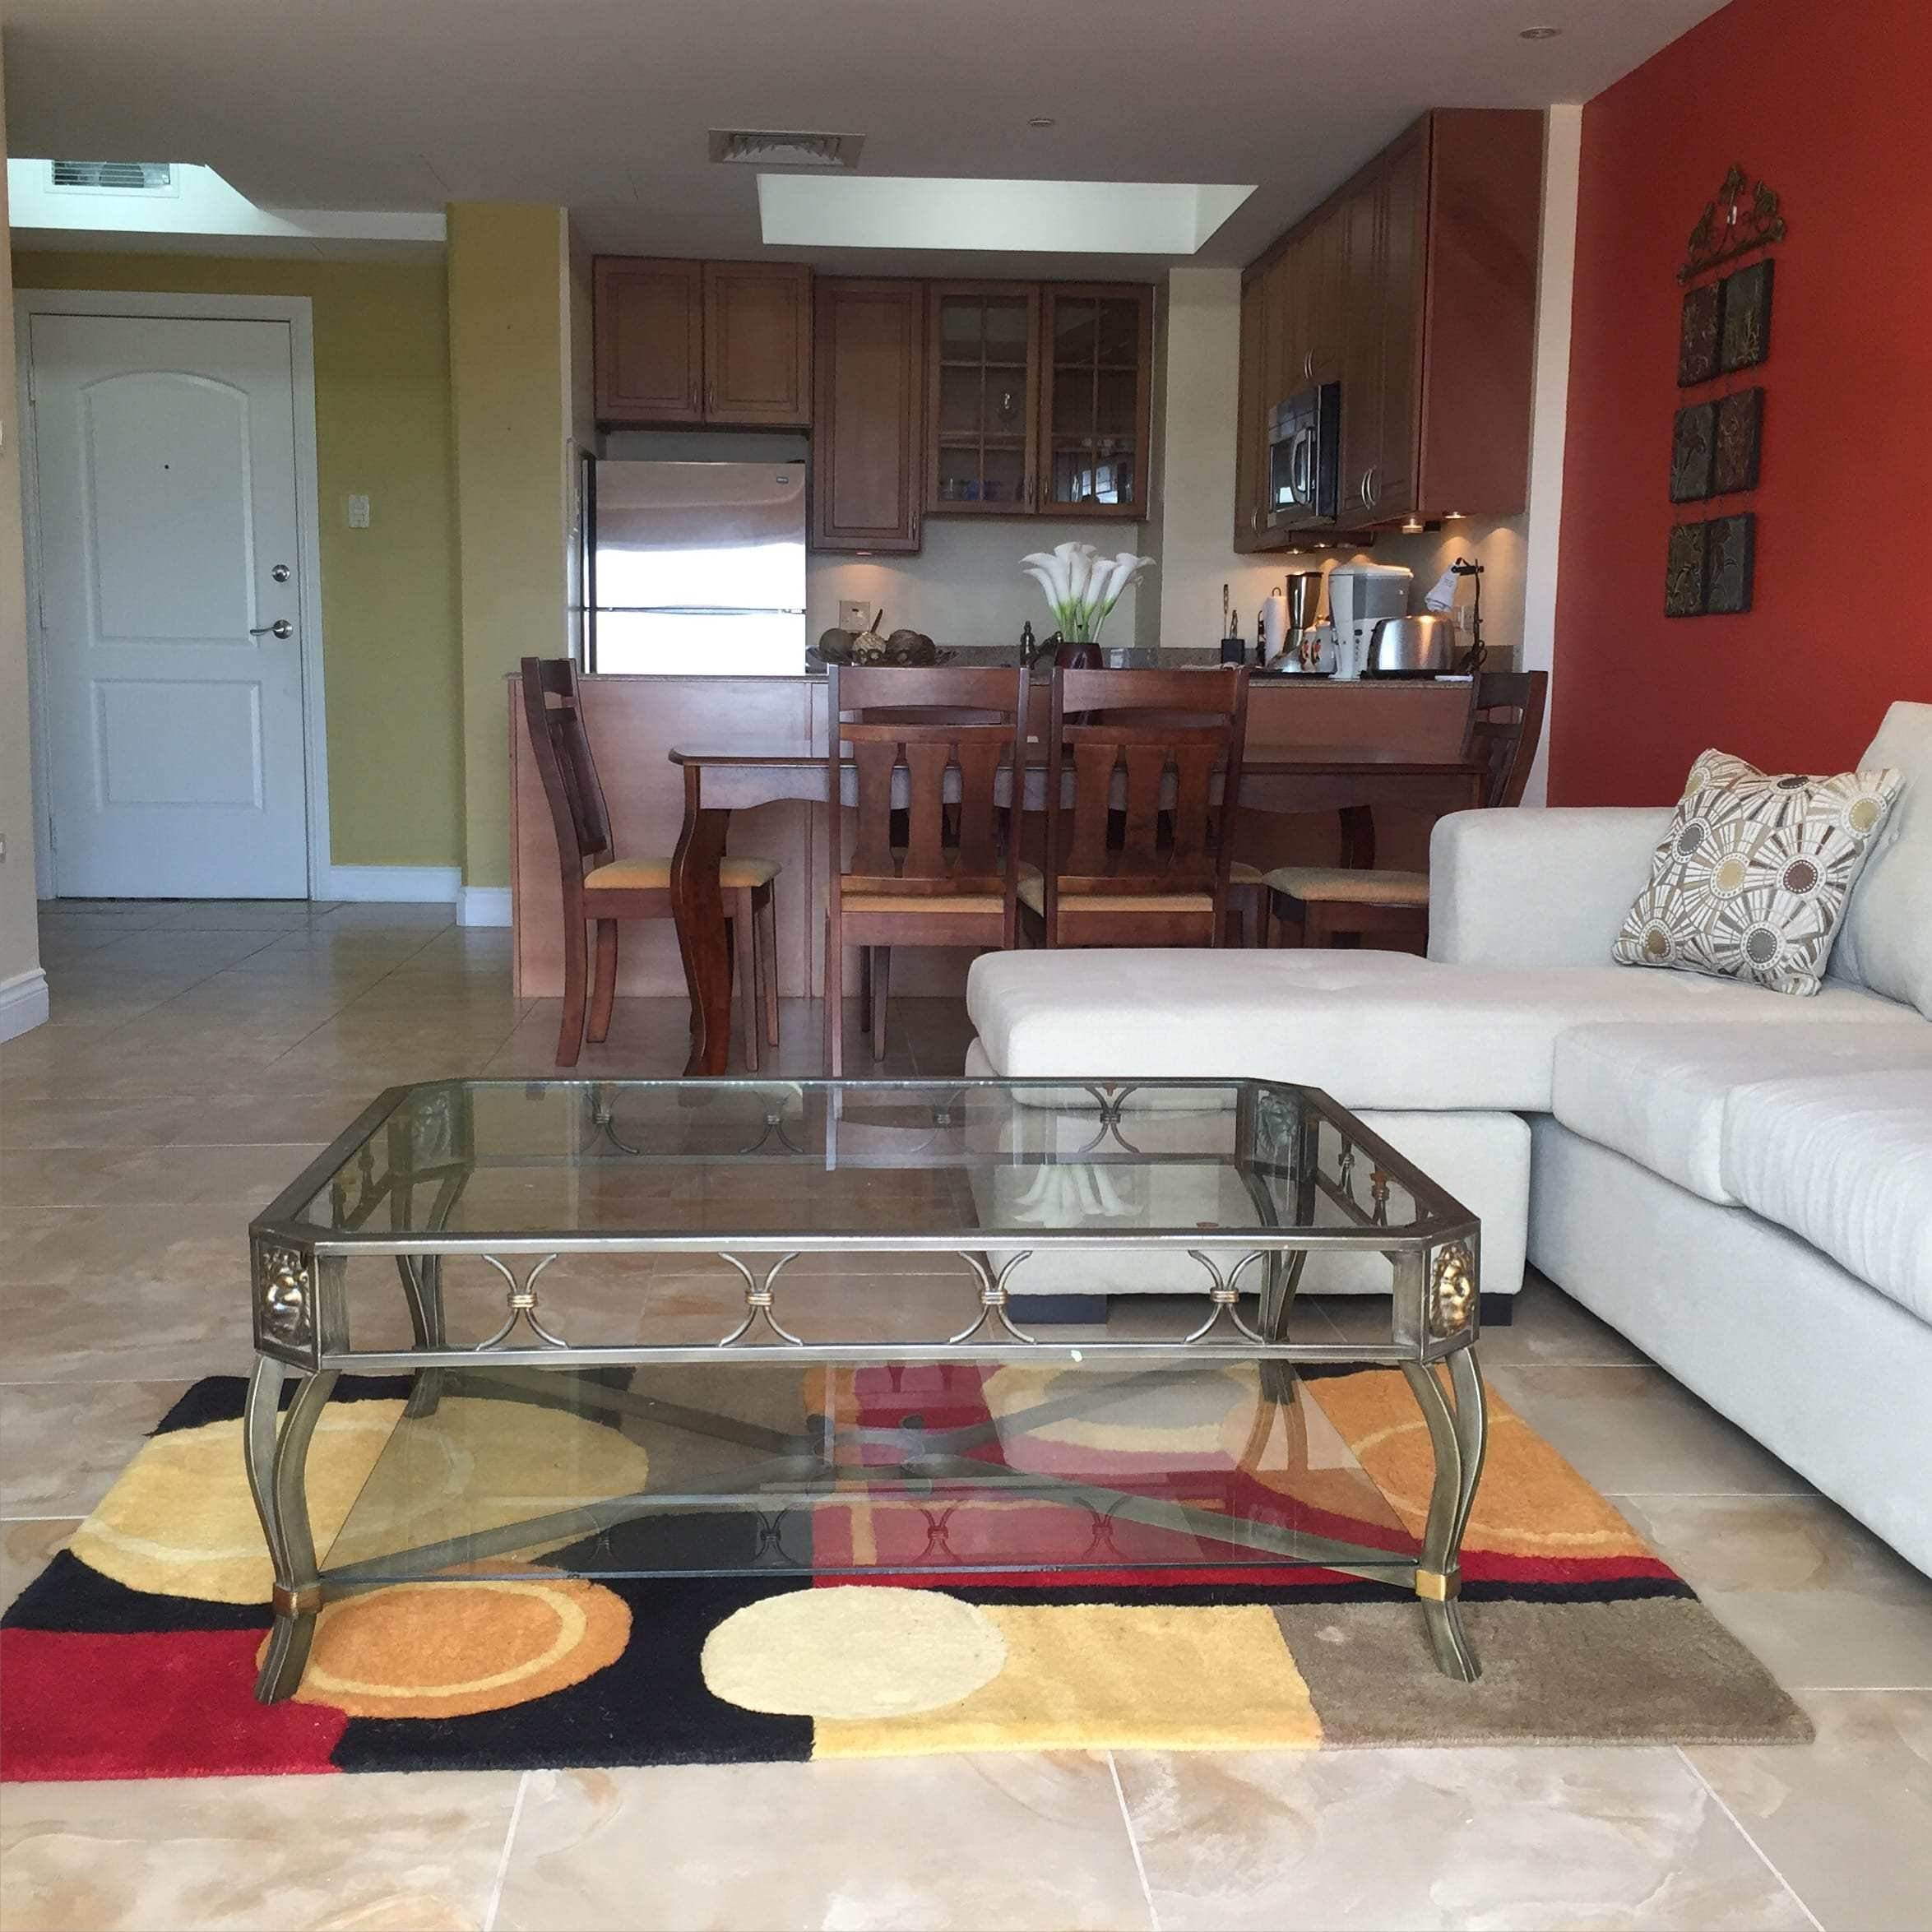 Best One Woodbrook Place 2 Bedroom Apartment For Rent Sanctorium Real Estate Services With Pictures